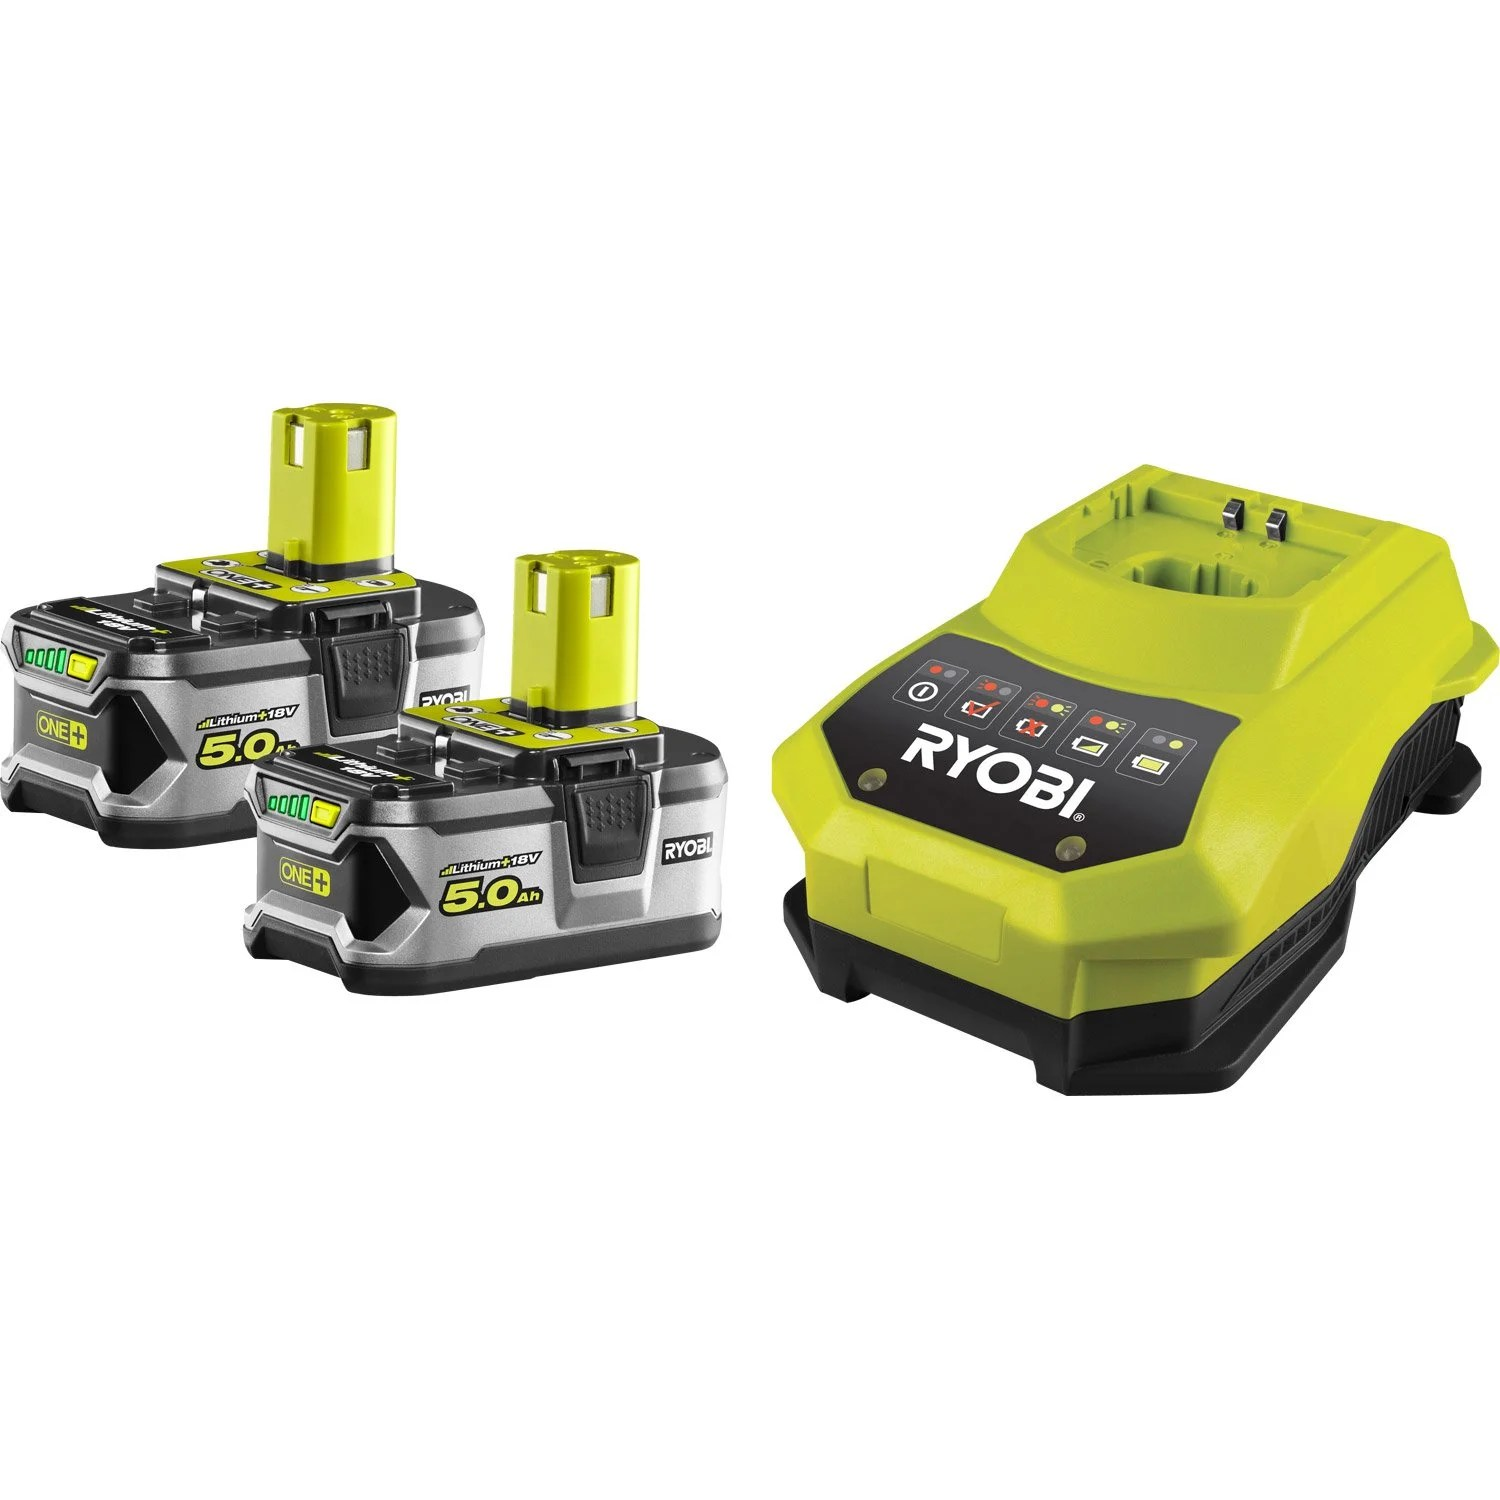 Ponceuse Excentrique Bosch Leroy Merlin Amazing Coffret Chargeur Batteries Ah Ryobi One Rbc With